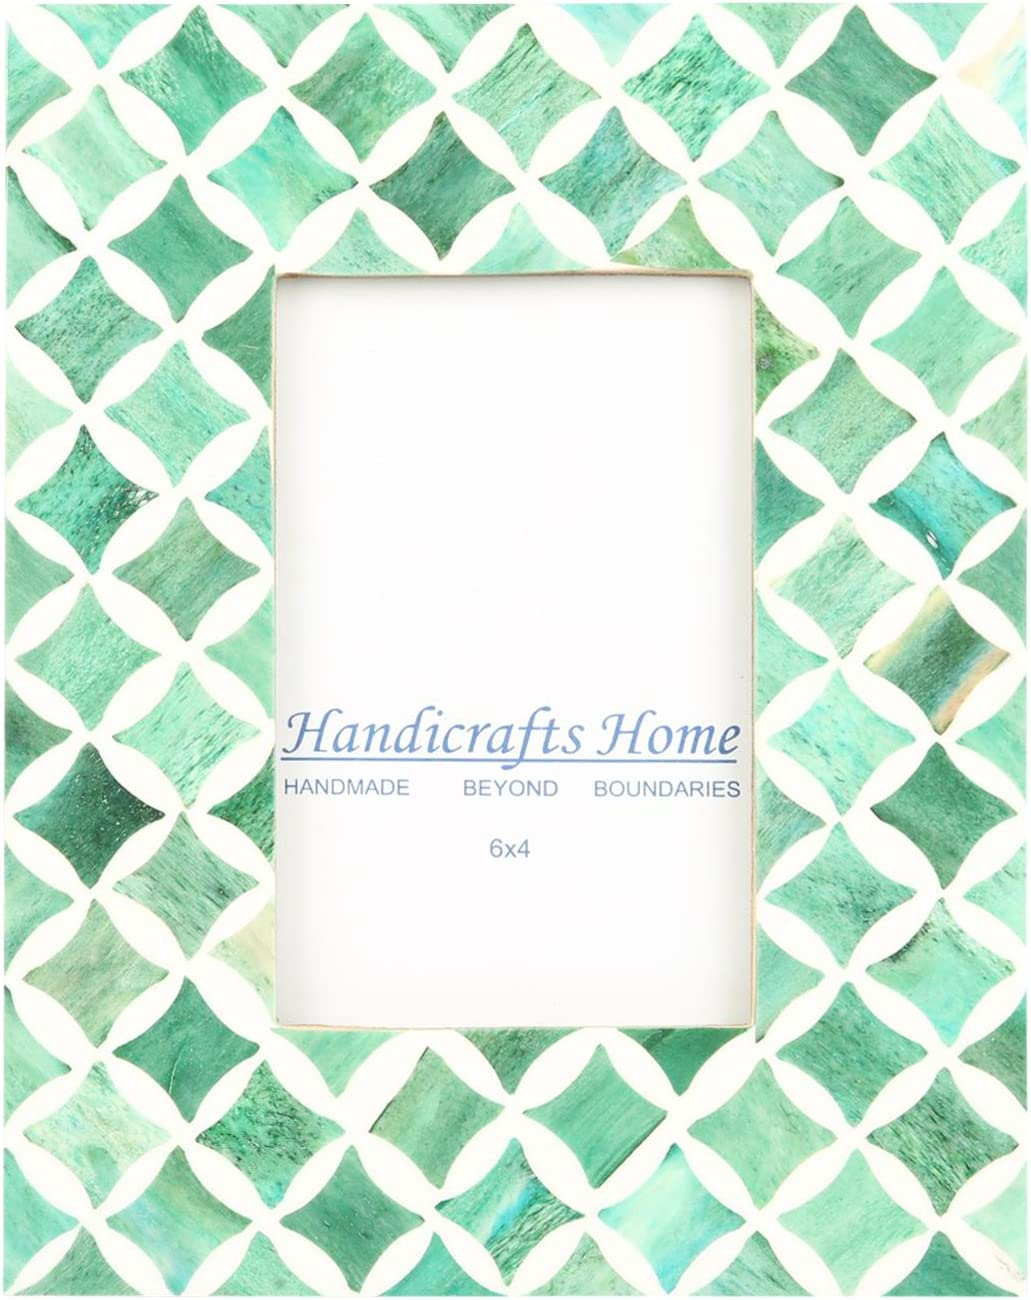 Handicrafts Home 4x6 Photo Frame Green White Bone Mosaic Moroccan Picture Frames